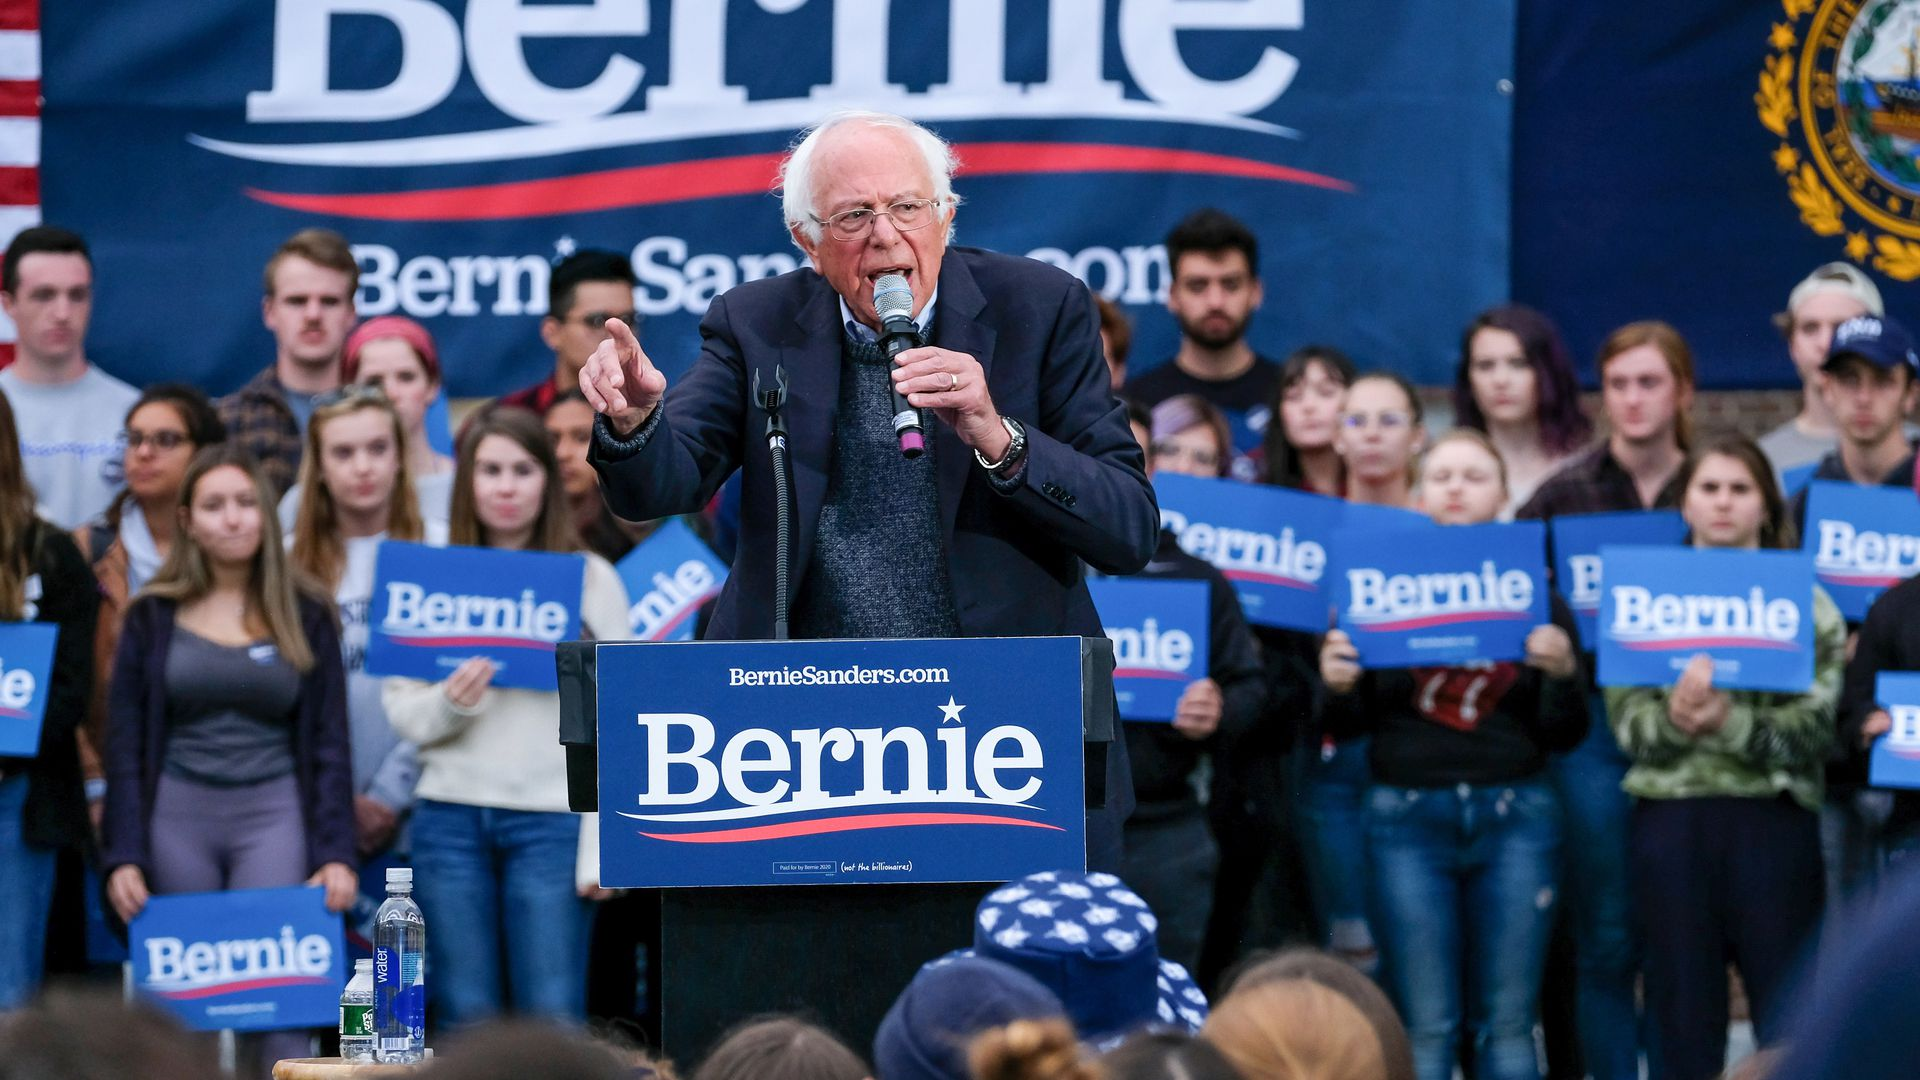 Vermont senator and presidential candidate Bernie Sanders campaigns at the University of New Hampshire in Durham. (Photo by Preston Ehrler/SOPA Images/LightRocket via Getty Images)